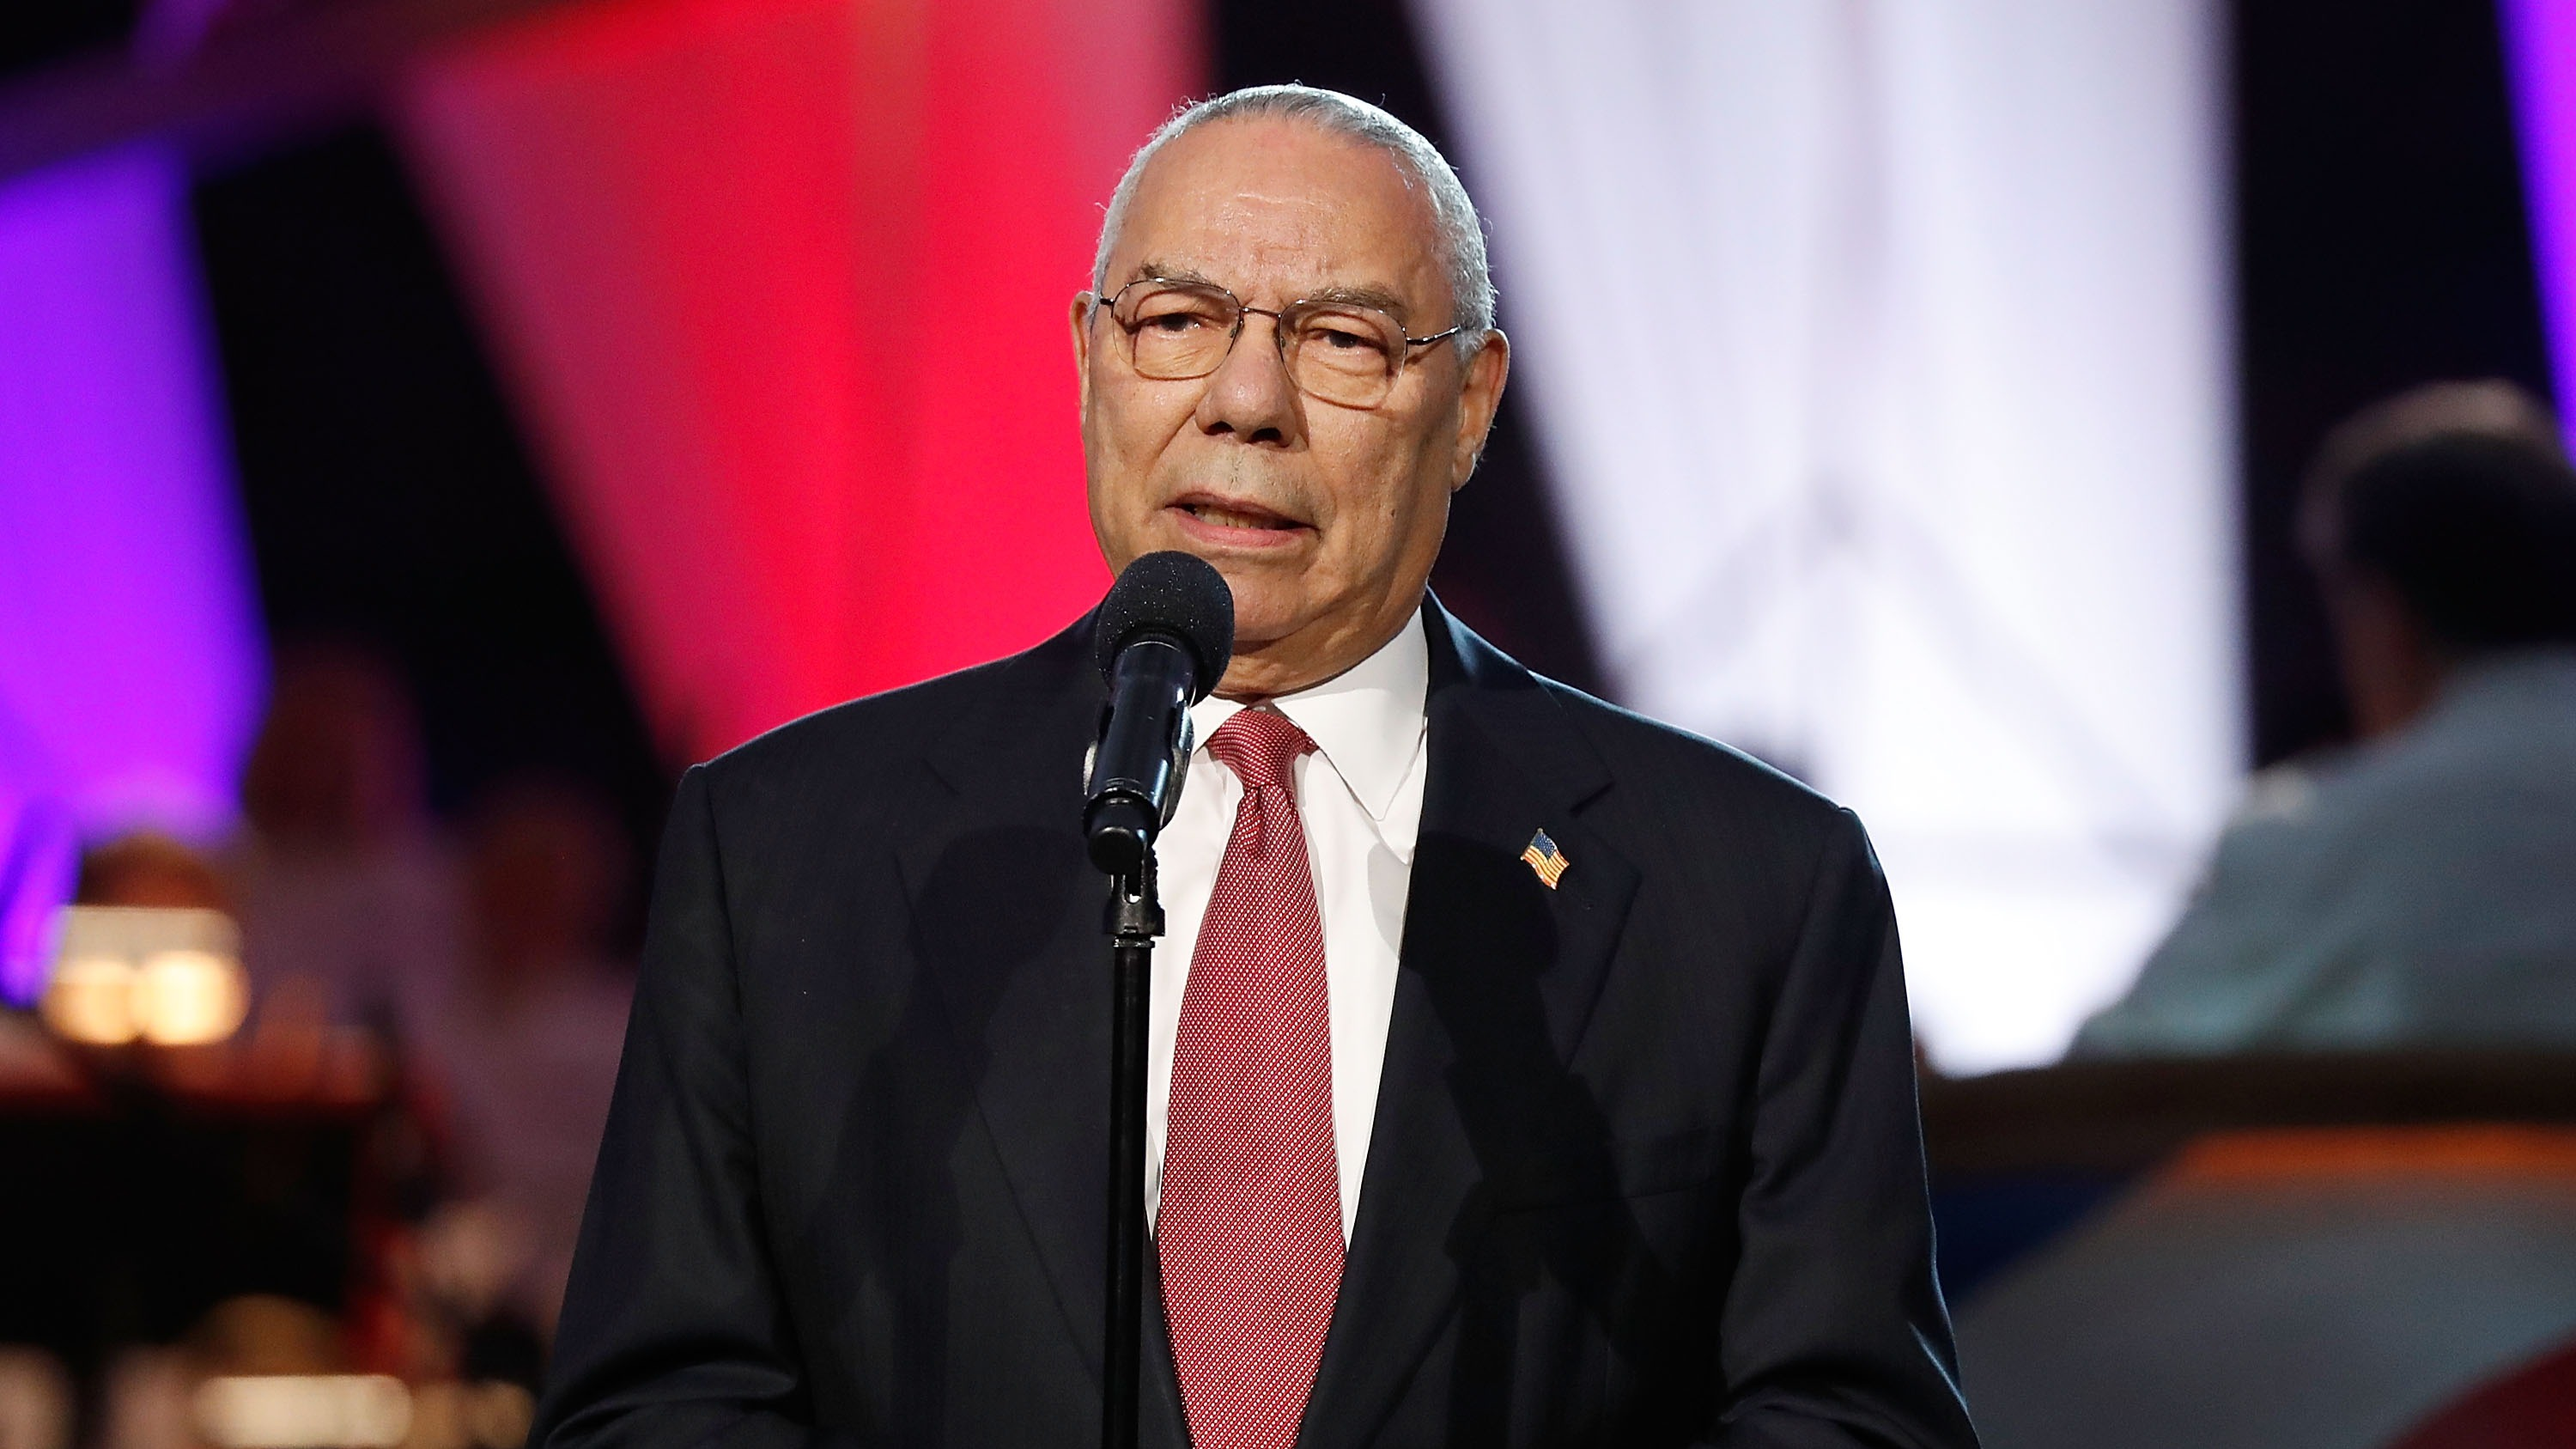 Distinguished American leader General Colin L. Powell, USA (Ret.) speaks during the 2018 National Memorial Day Concert